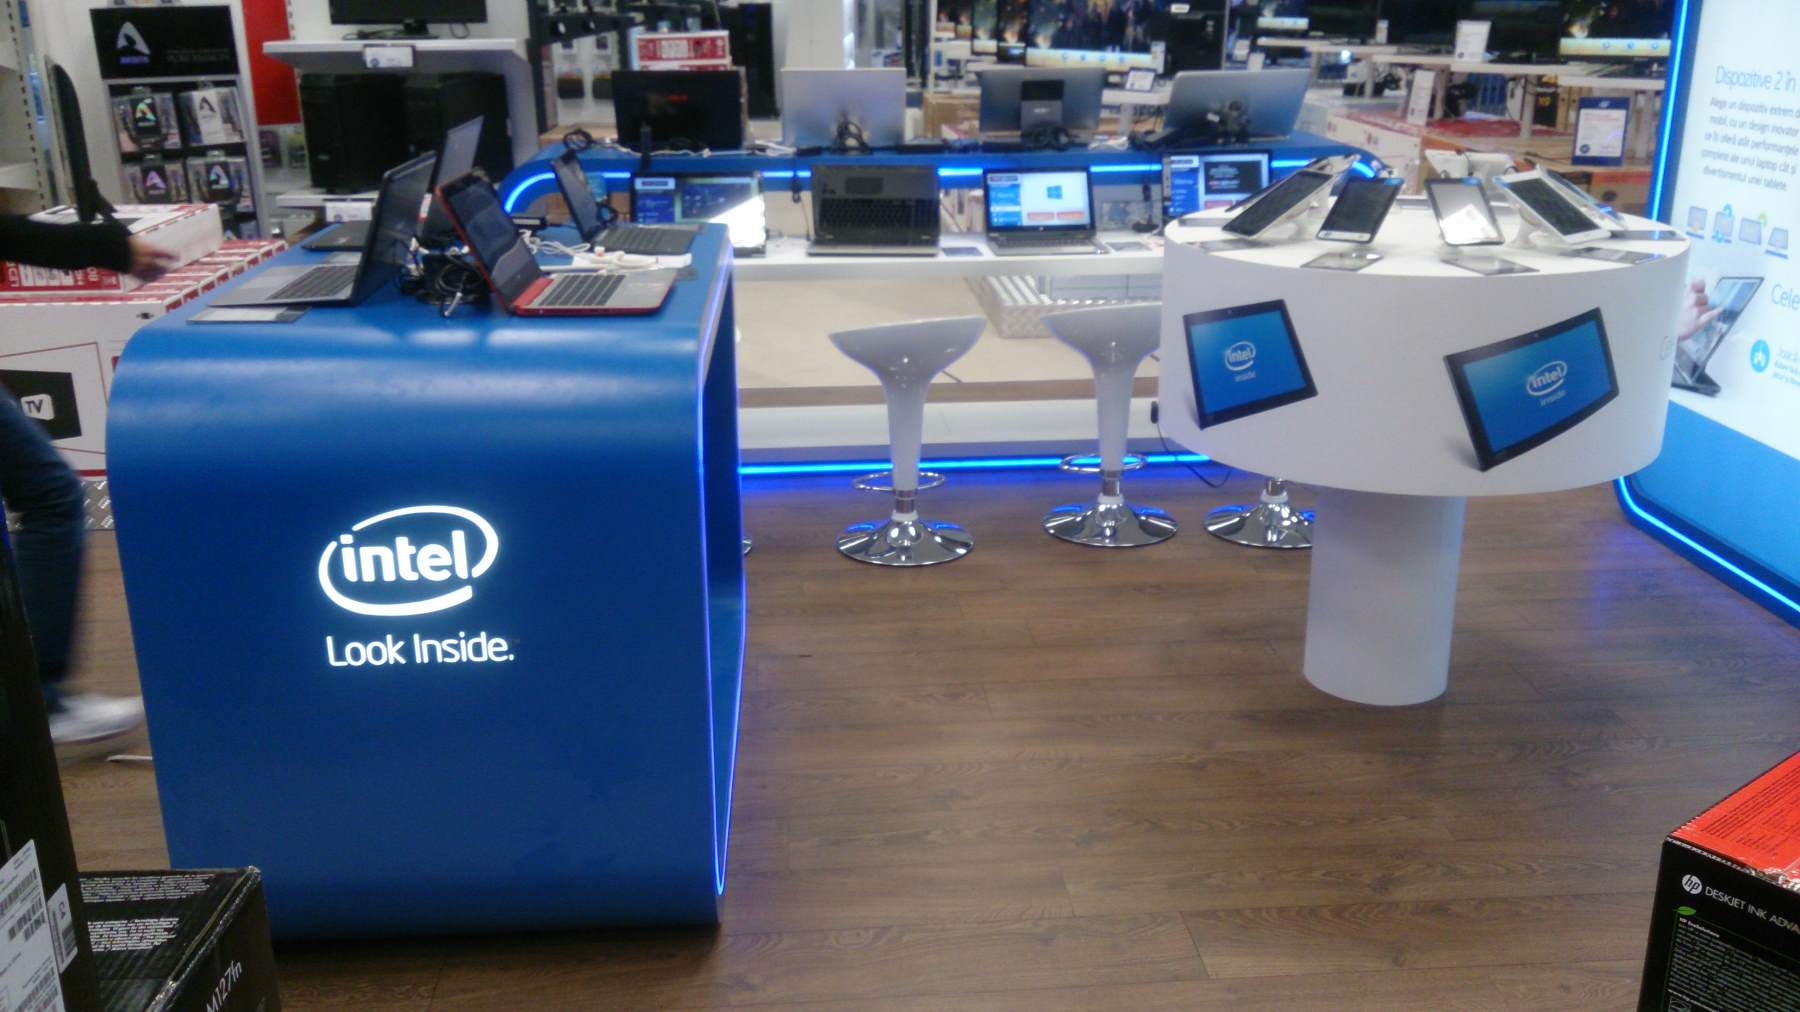 mobilier stand INTEL mall mdf hpl 006